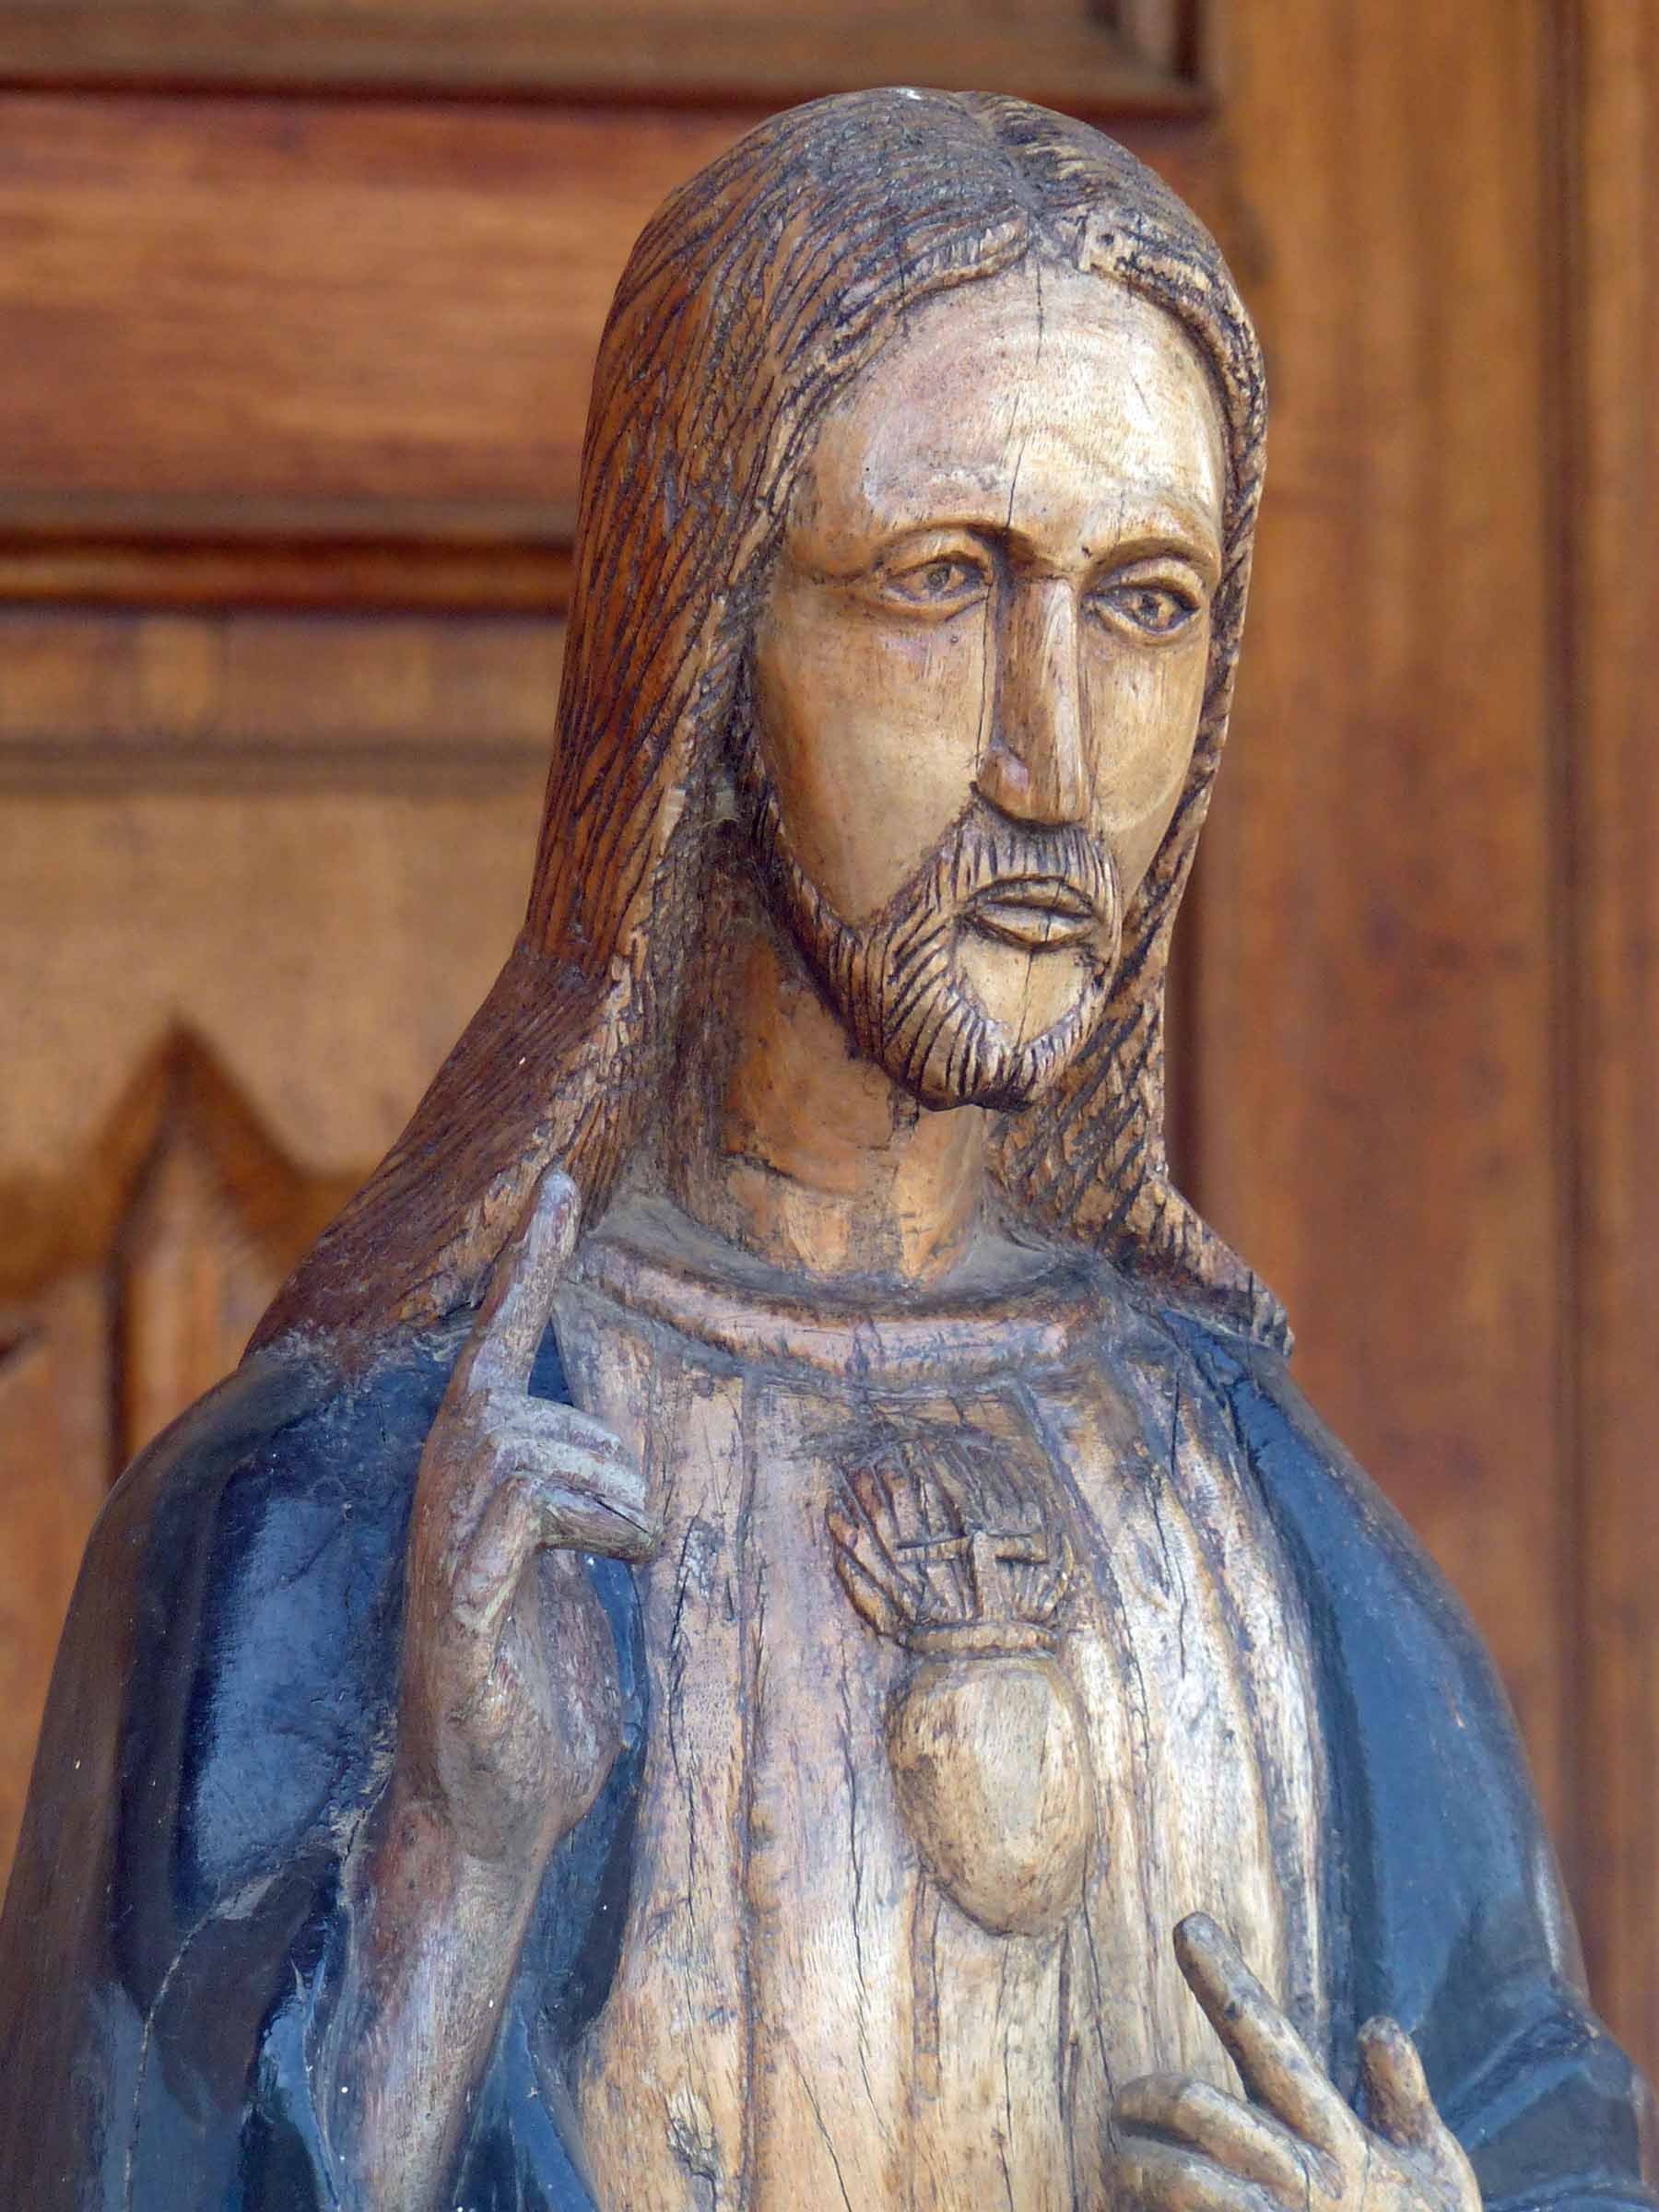 Wooden carving of Christ